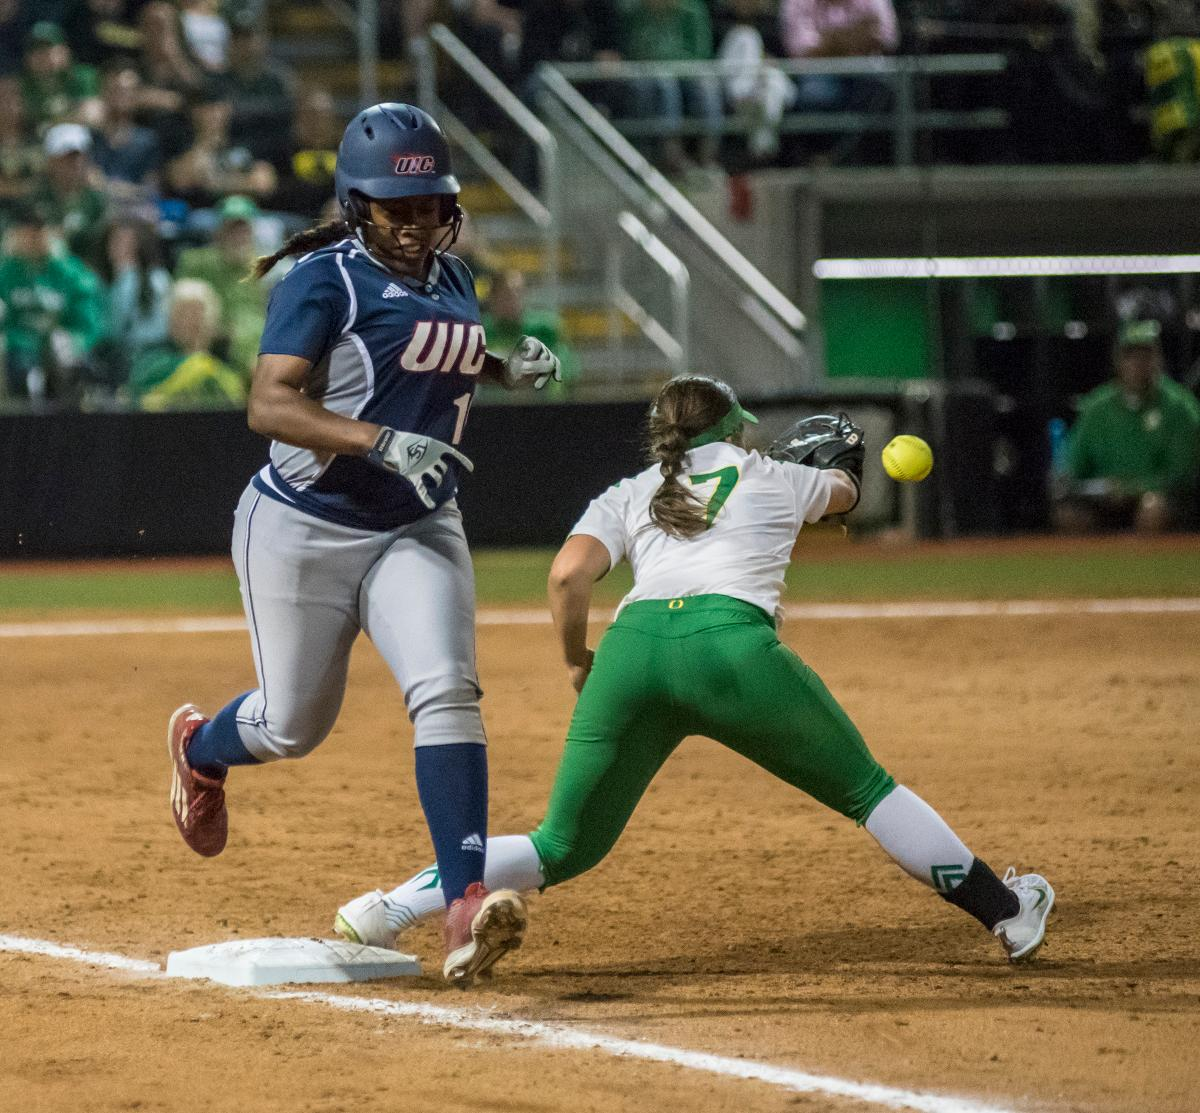 Chicago Flames player Tiana Mack-Miller (#10) safely runs to first as Oregon Ducks Mia Camuso (#7) attempts to catch the ball. The No. 3 Oregon Ducks defeated the University of Illinois Chicago Flames 13-0 with the run-rule on Saturday night at Jane Sanders Stadium. The Ducks scored in every inning and then scored nine runs at the bottom of the fourth. The Oregon Ducks are now 22-0 in NCAA regional games. The Oregon Ducks play Wisconsin next on Saturday, May 20 at 2pm at Jane Sanders Stadium. Photo by Cheyenne Thorpe, Oregon News Lab